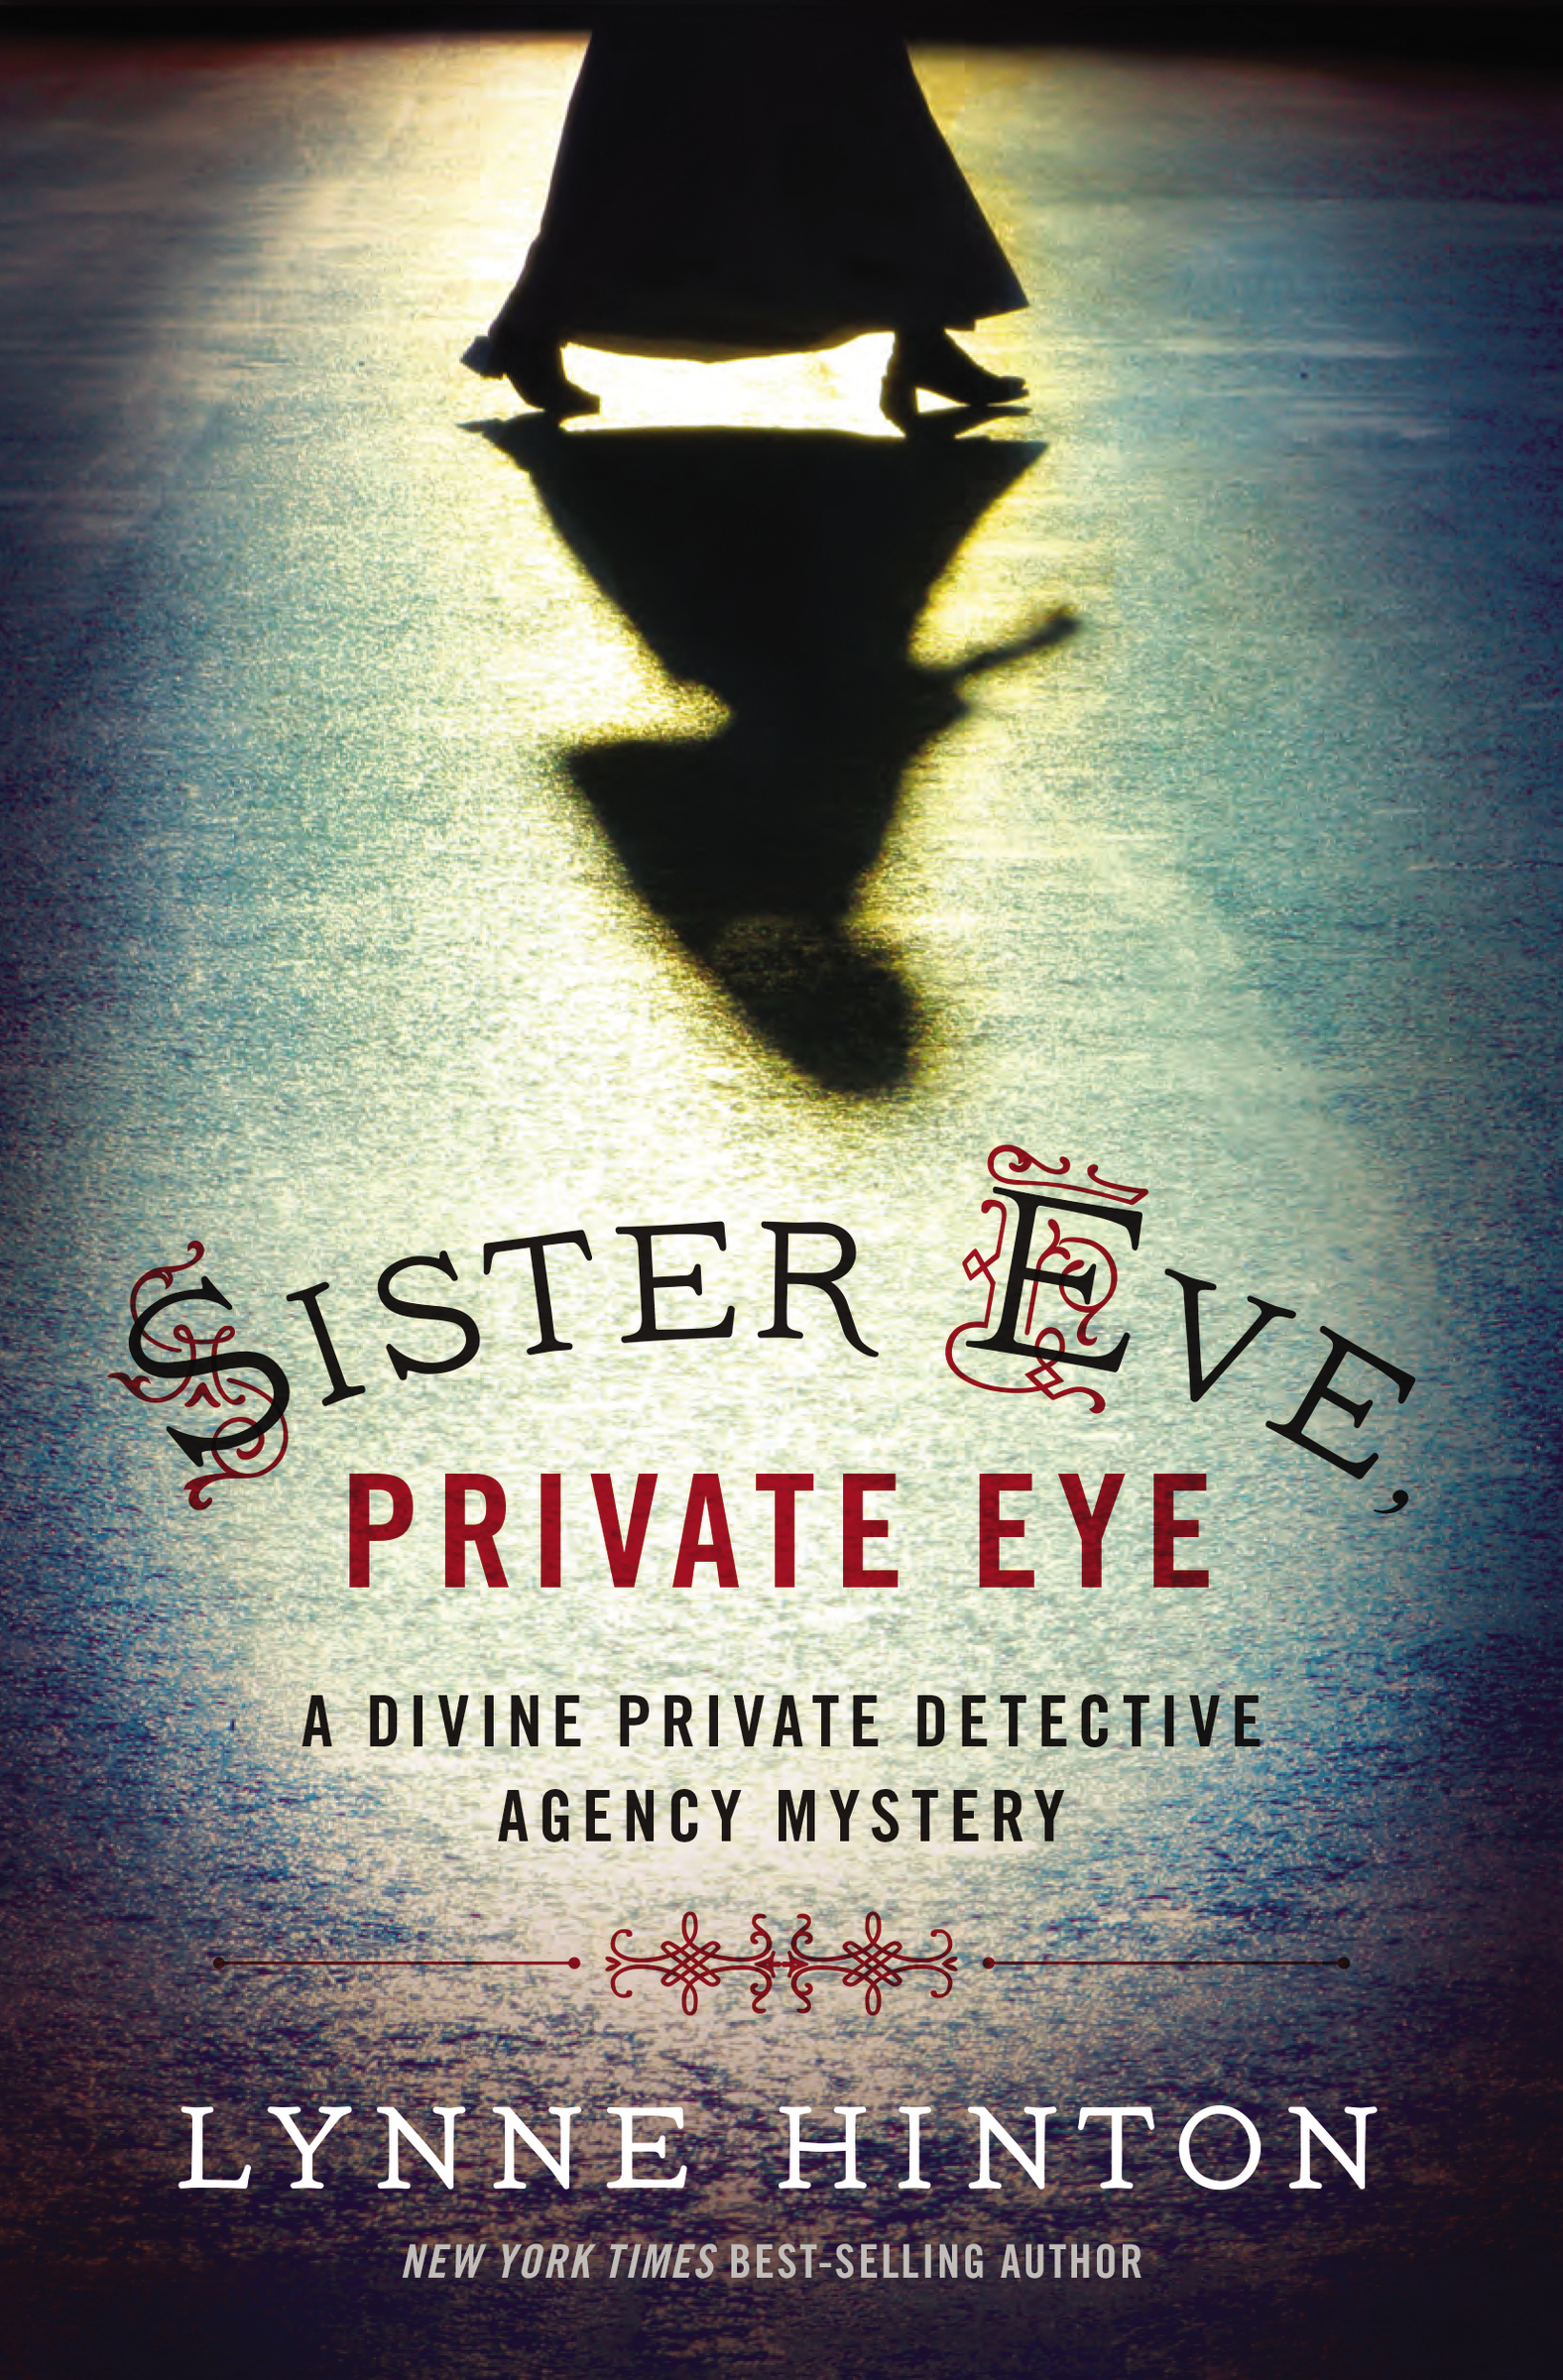 Cover Image of Sister Eve, Private Eye